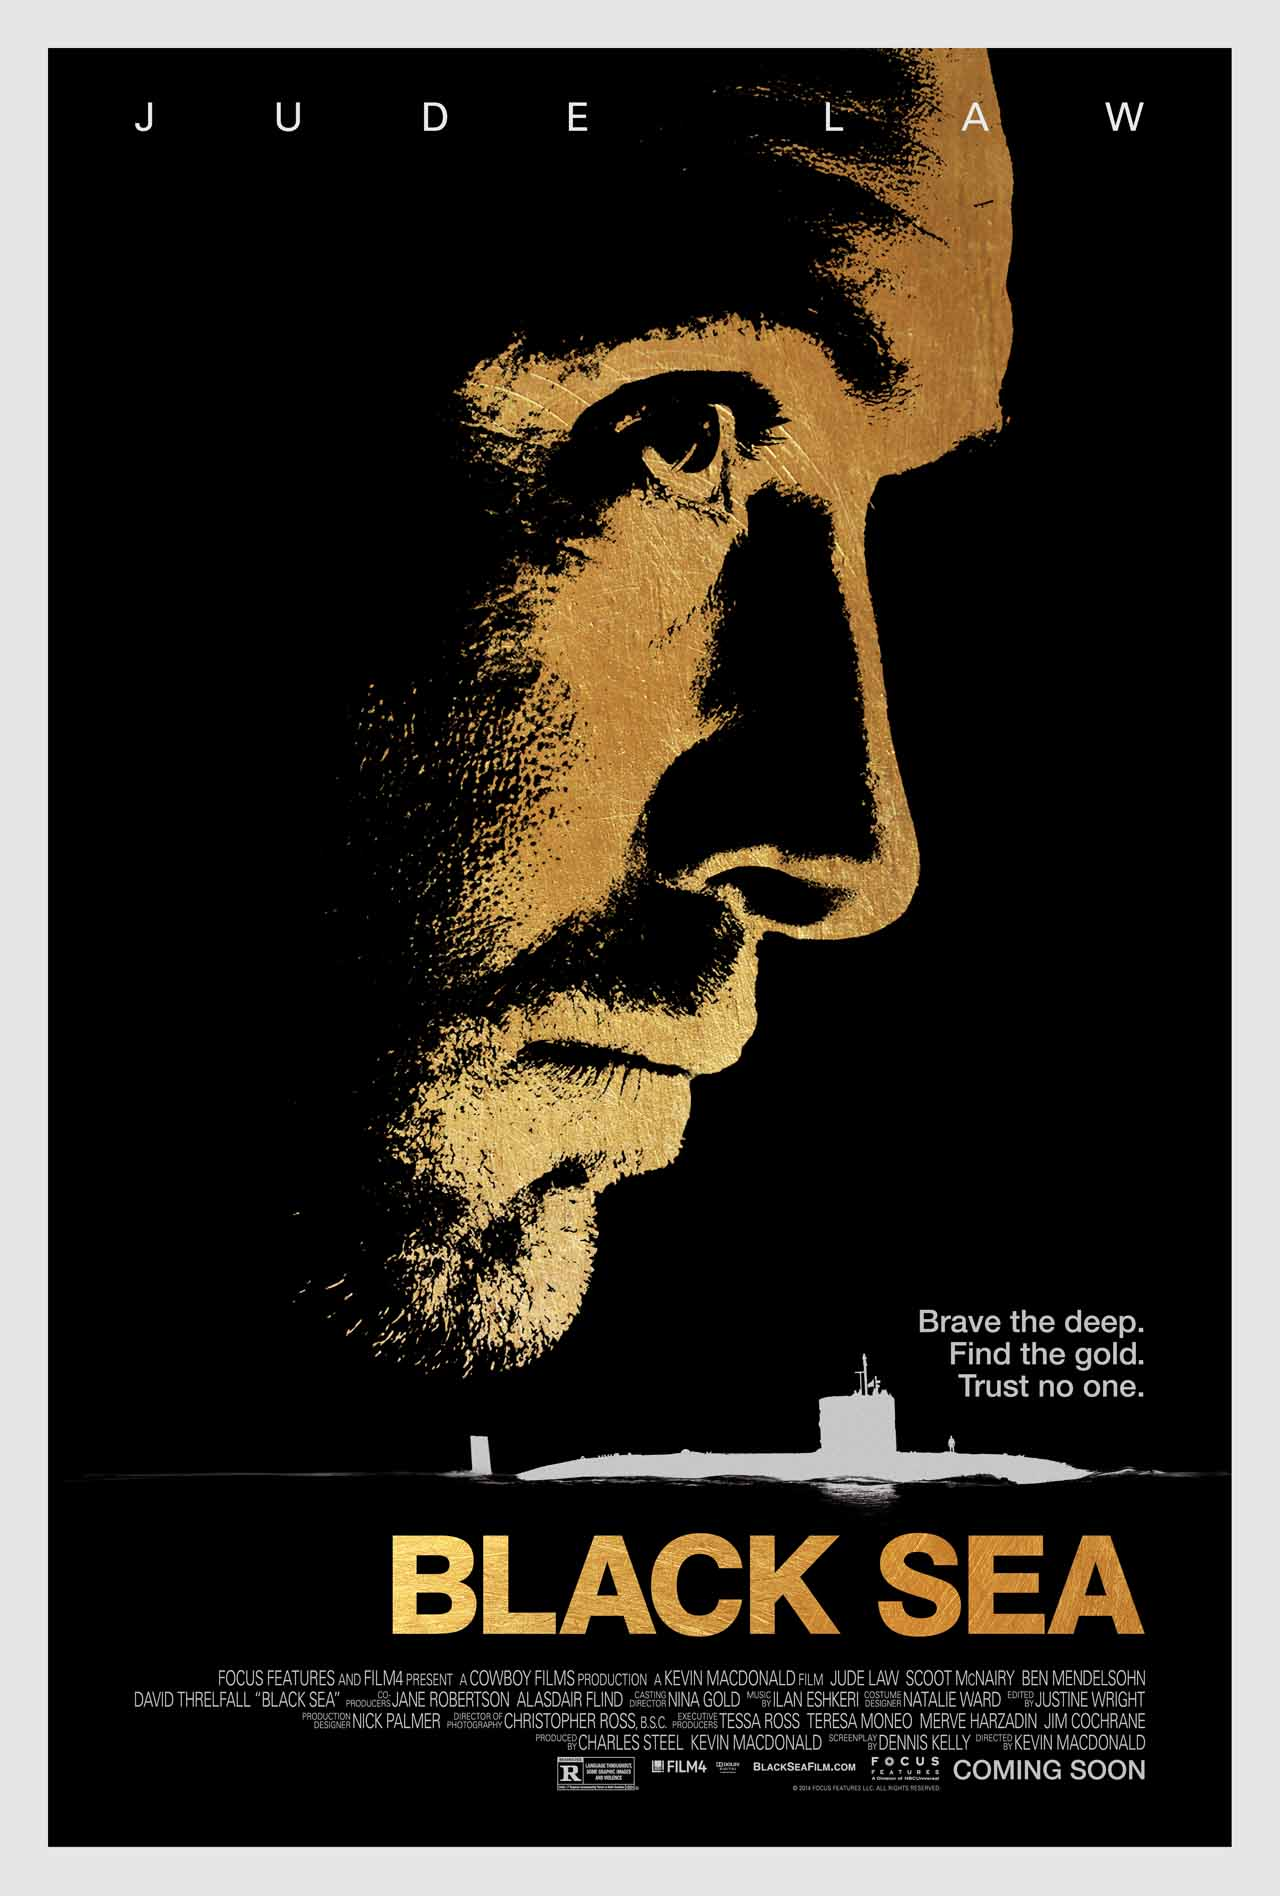 BLACK SEA | Mahzens Film